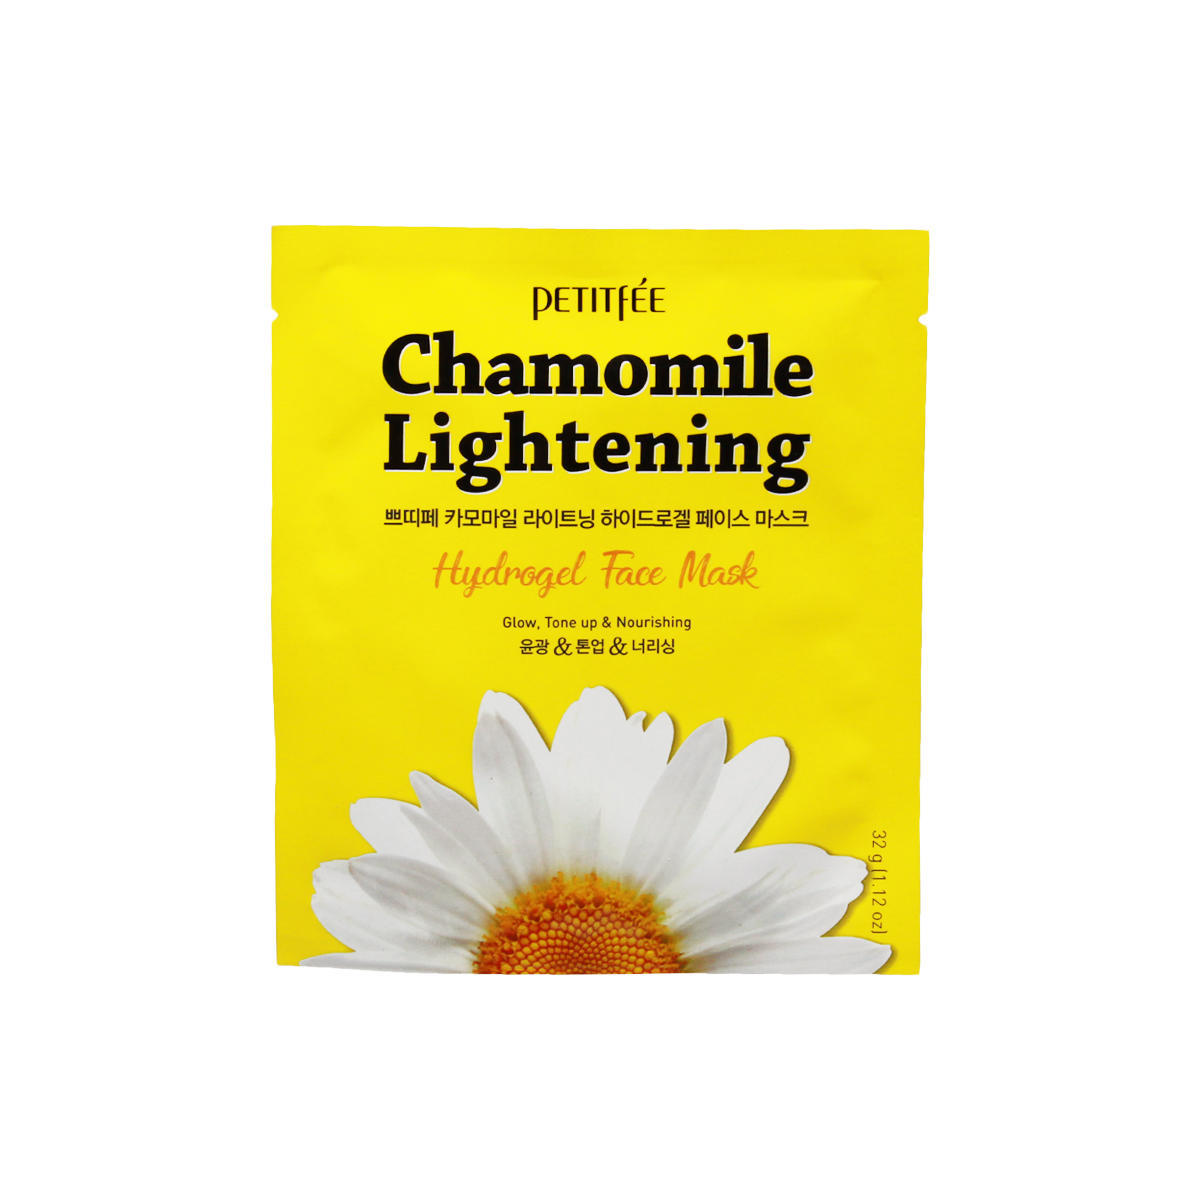 Гидрогелевые маски Гидрогелевая маска Petitfee Chamomile Lightening Hydrogel Face Mask, 32 мл import_files_57_575b76a55b1c11e980fb3408042974b1_575b76a65b1c11e980fb3408042974b1.jpg